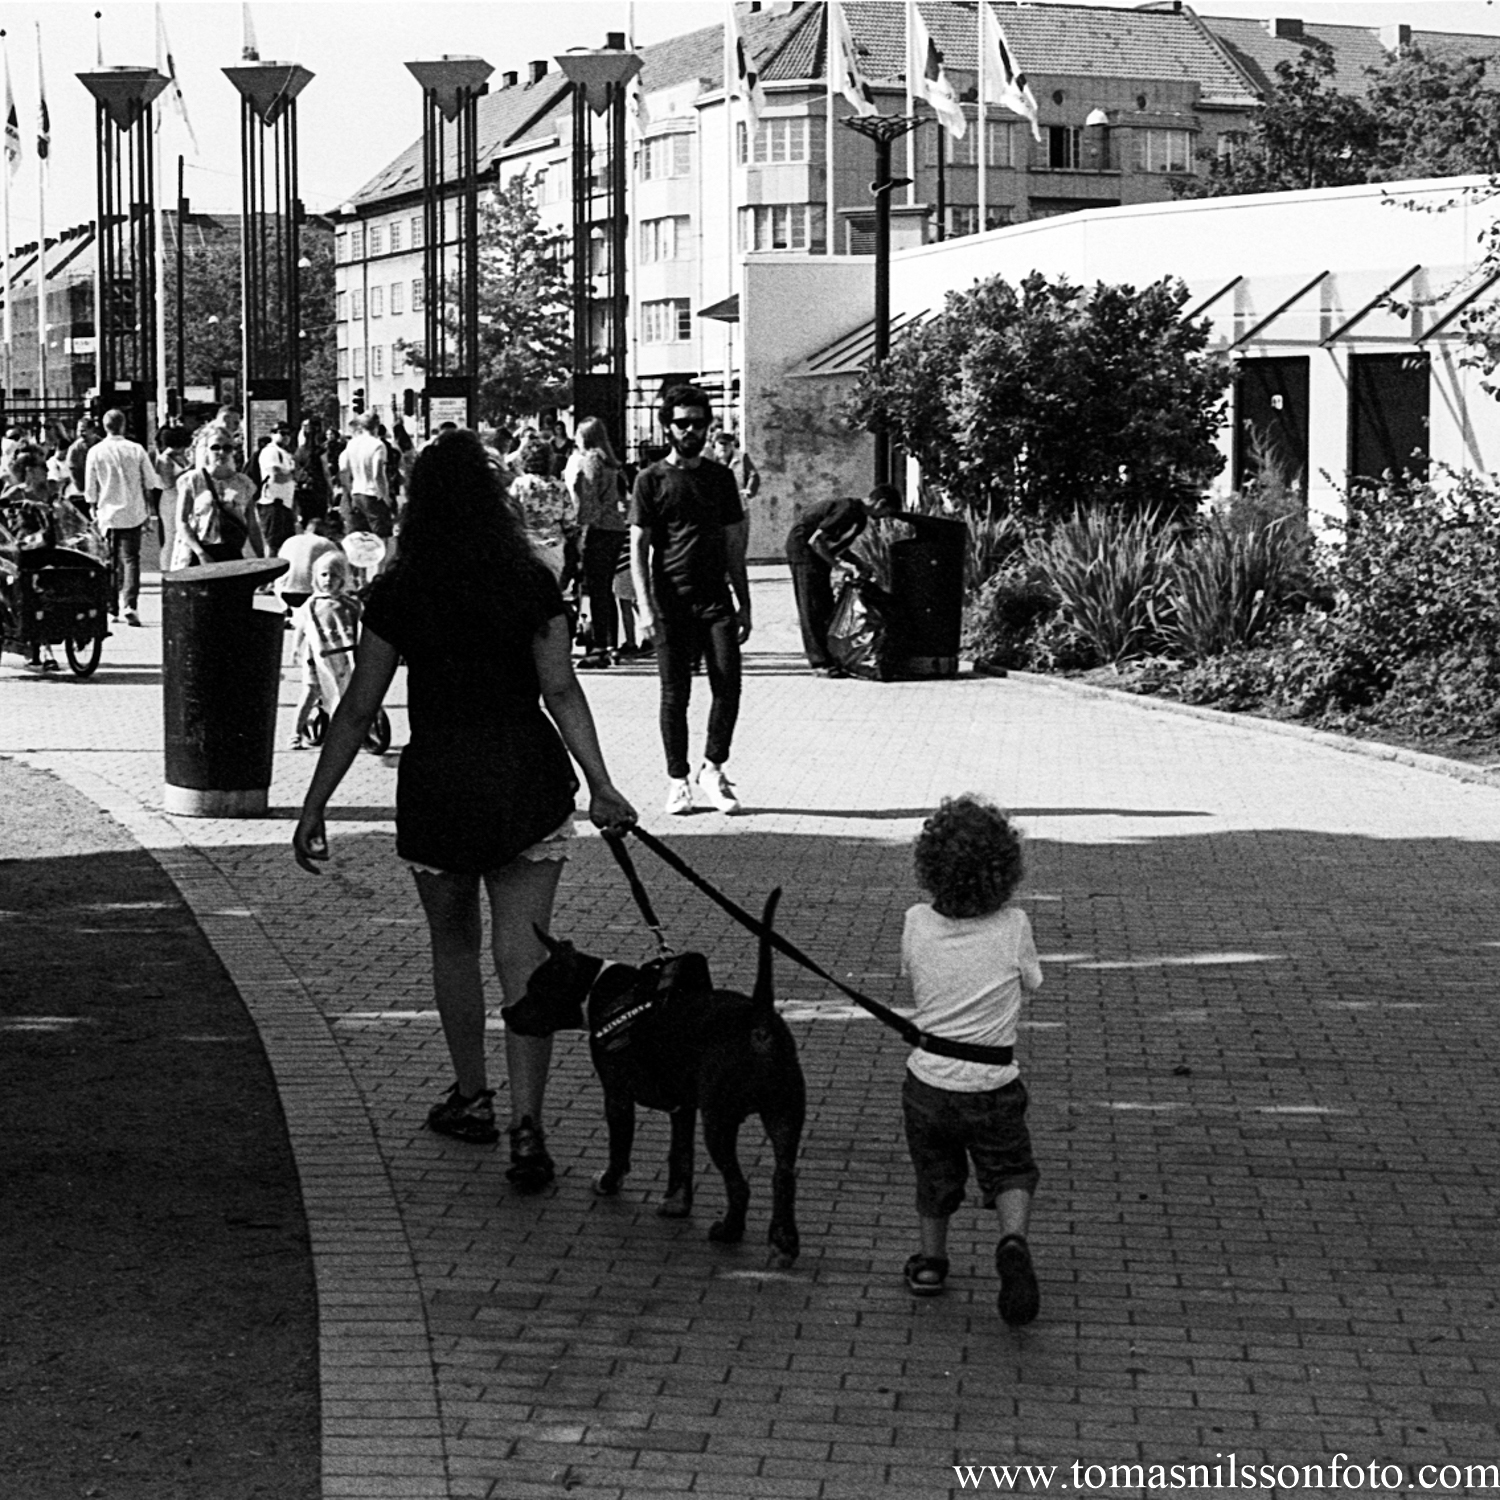 Day 204 - July 23: On a leash